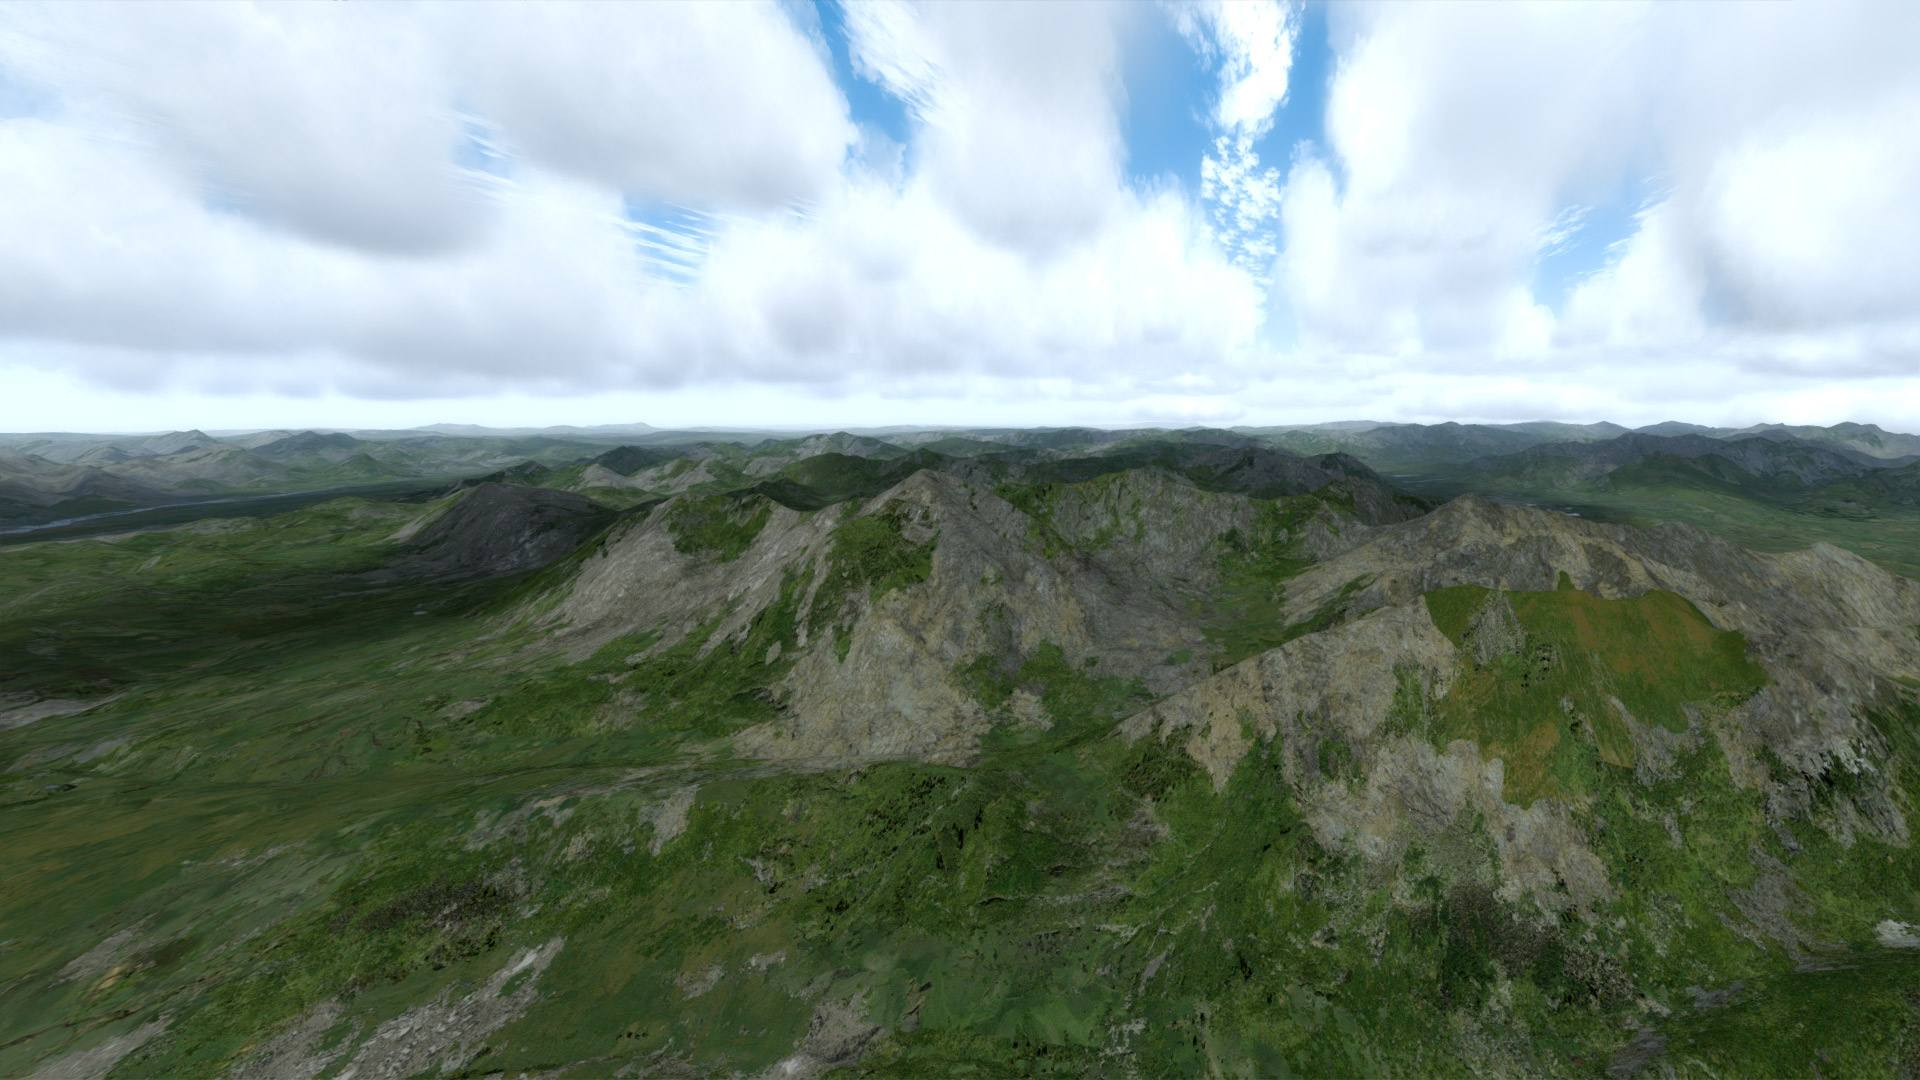 Emerald Scenery Design - Scenery Addons for FSX and P3D